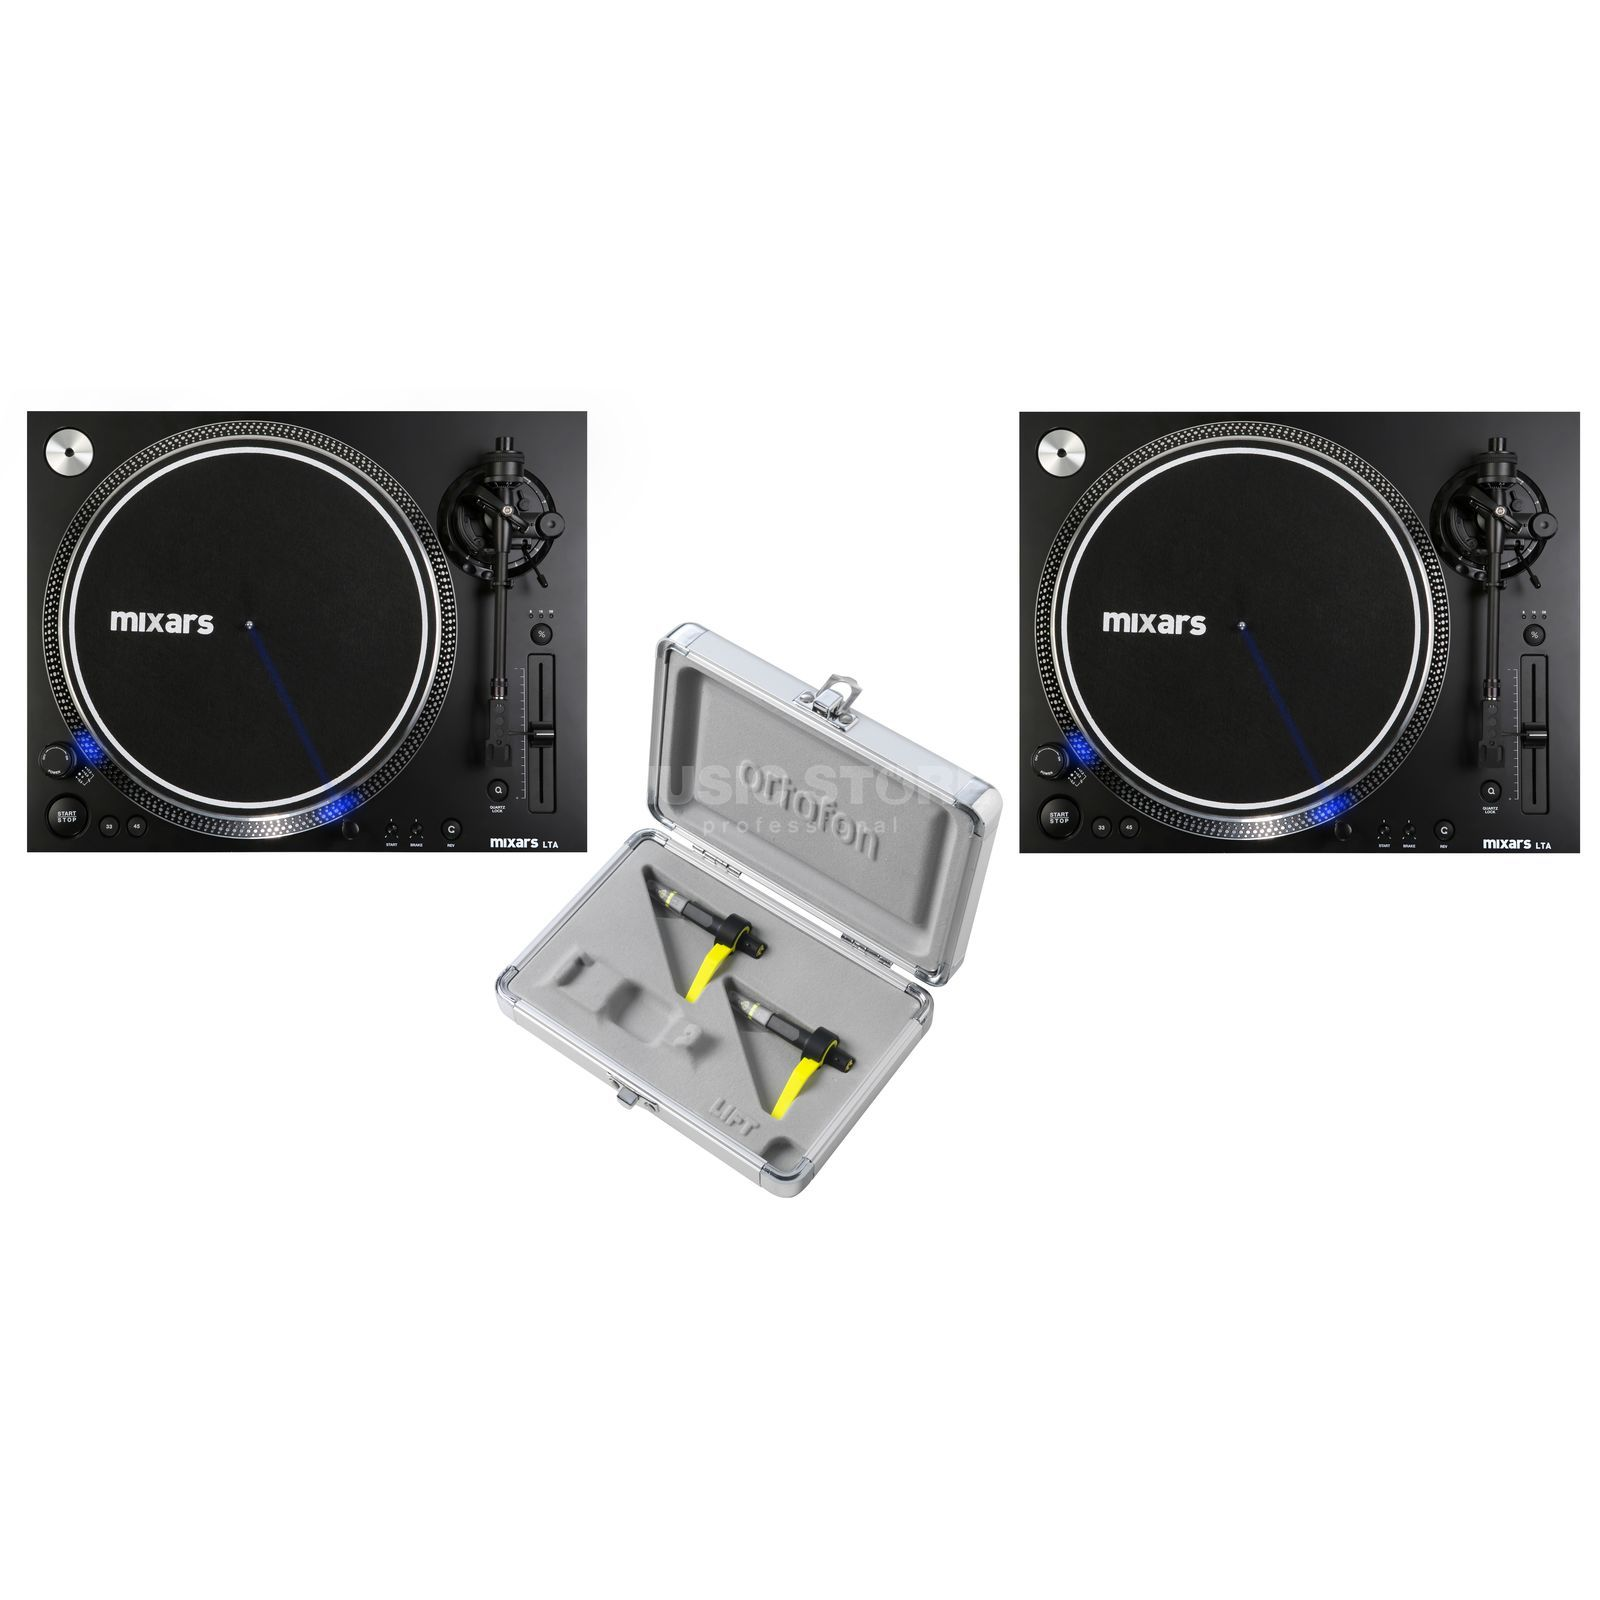 Mixars LTA + MK2 Club Twin Set Product Image